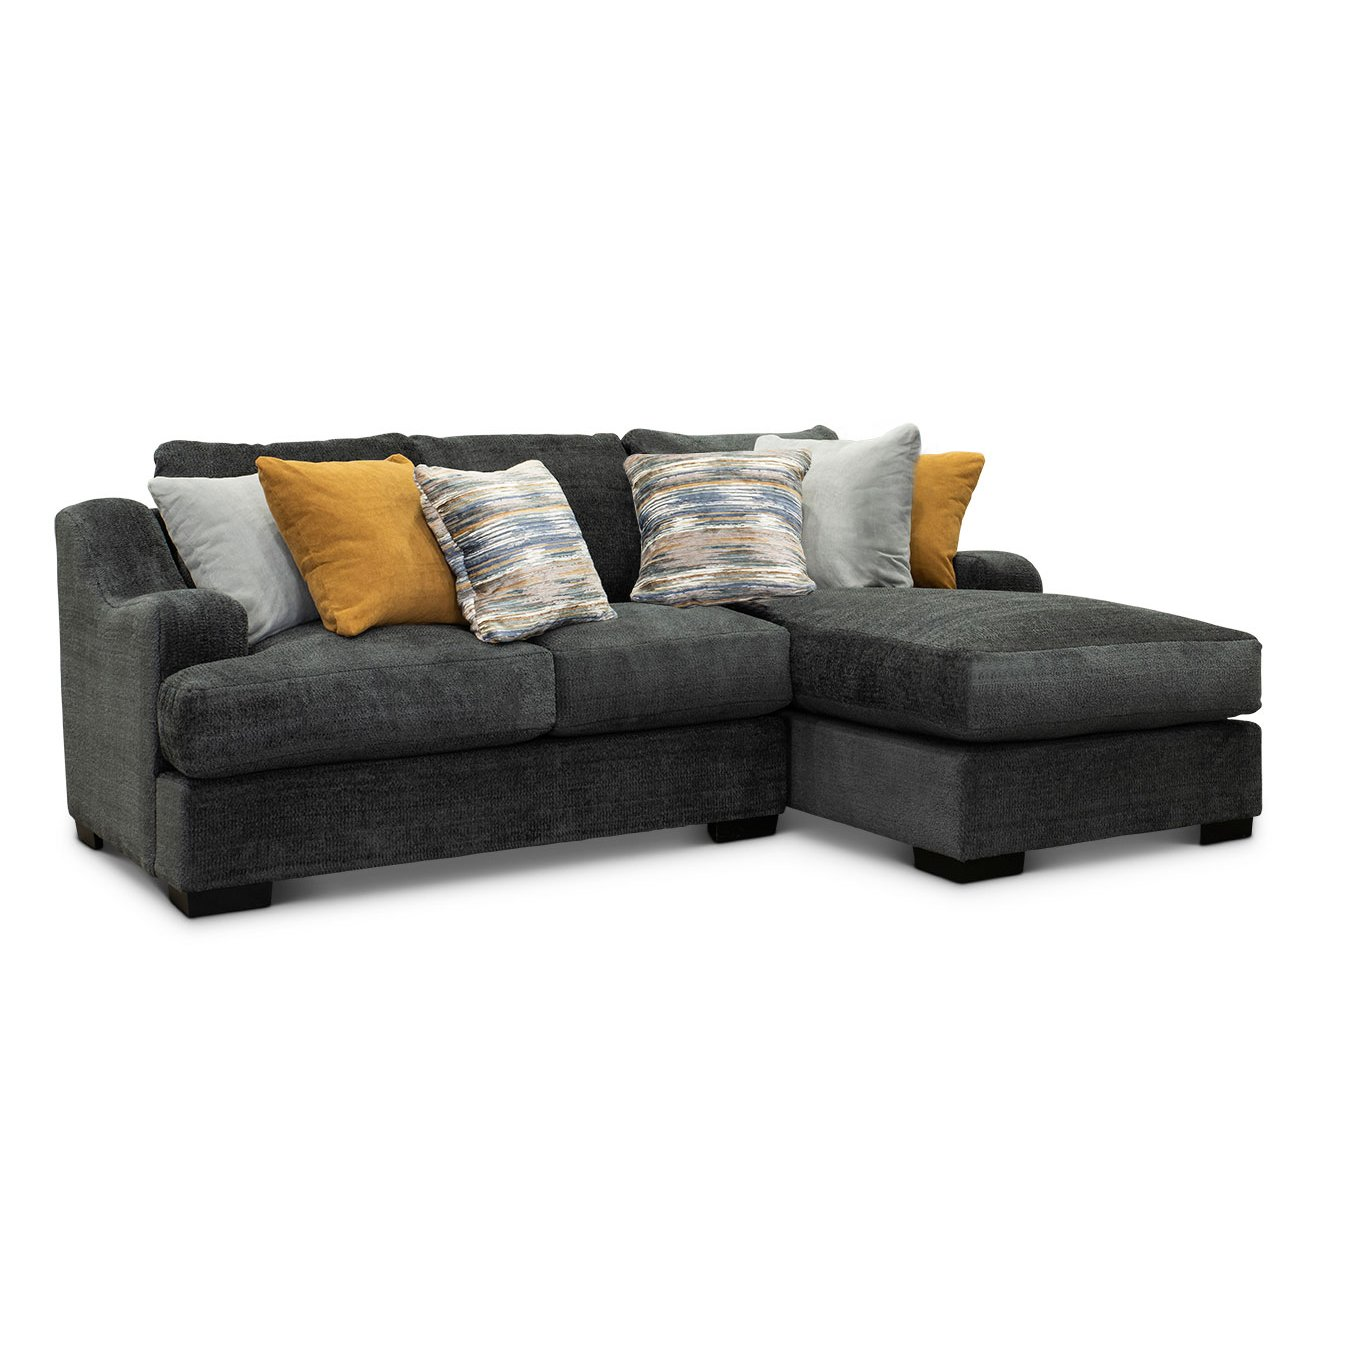 Gray 2 Piece Sectional Sofa with RAF Chaise - Challenger